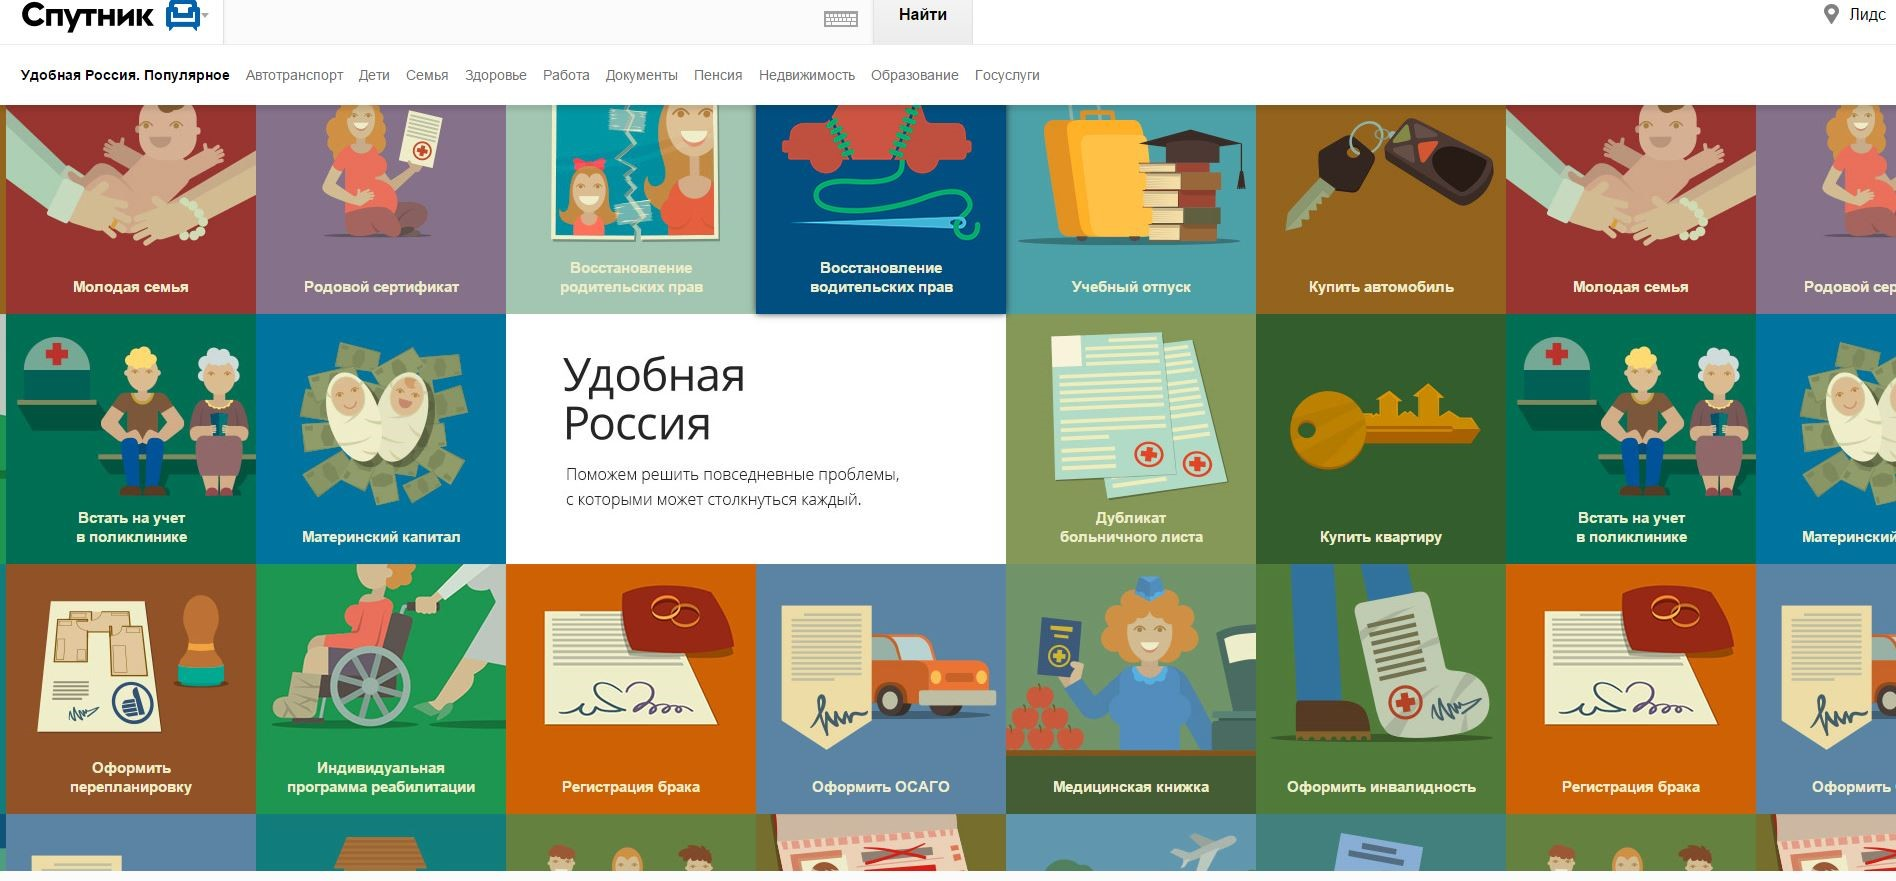 russia imposes strict censorship on media Russia has passed a law banning software that allows users to view internet sites barred in the country anonymously.